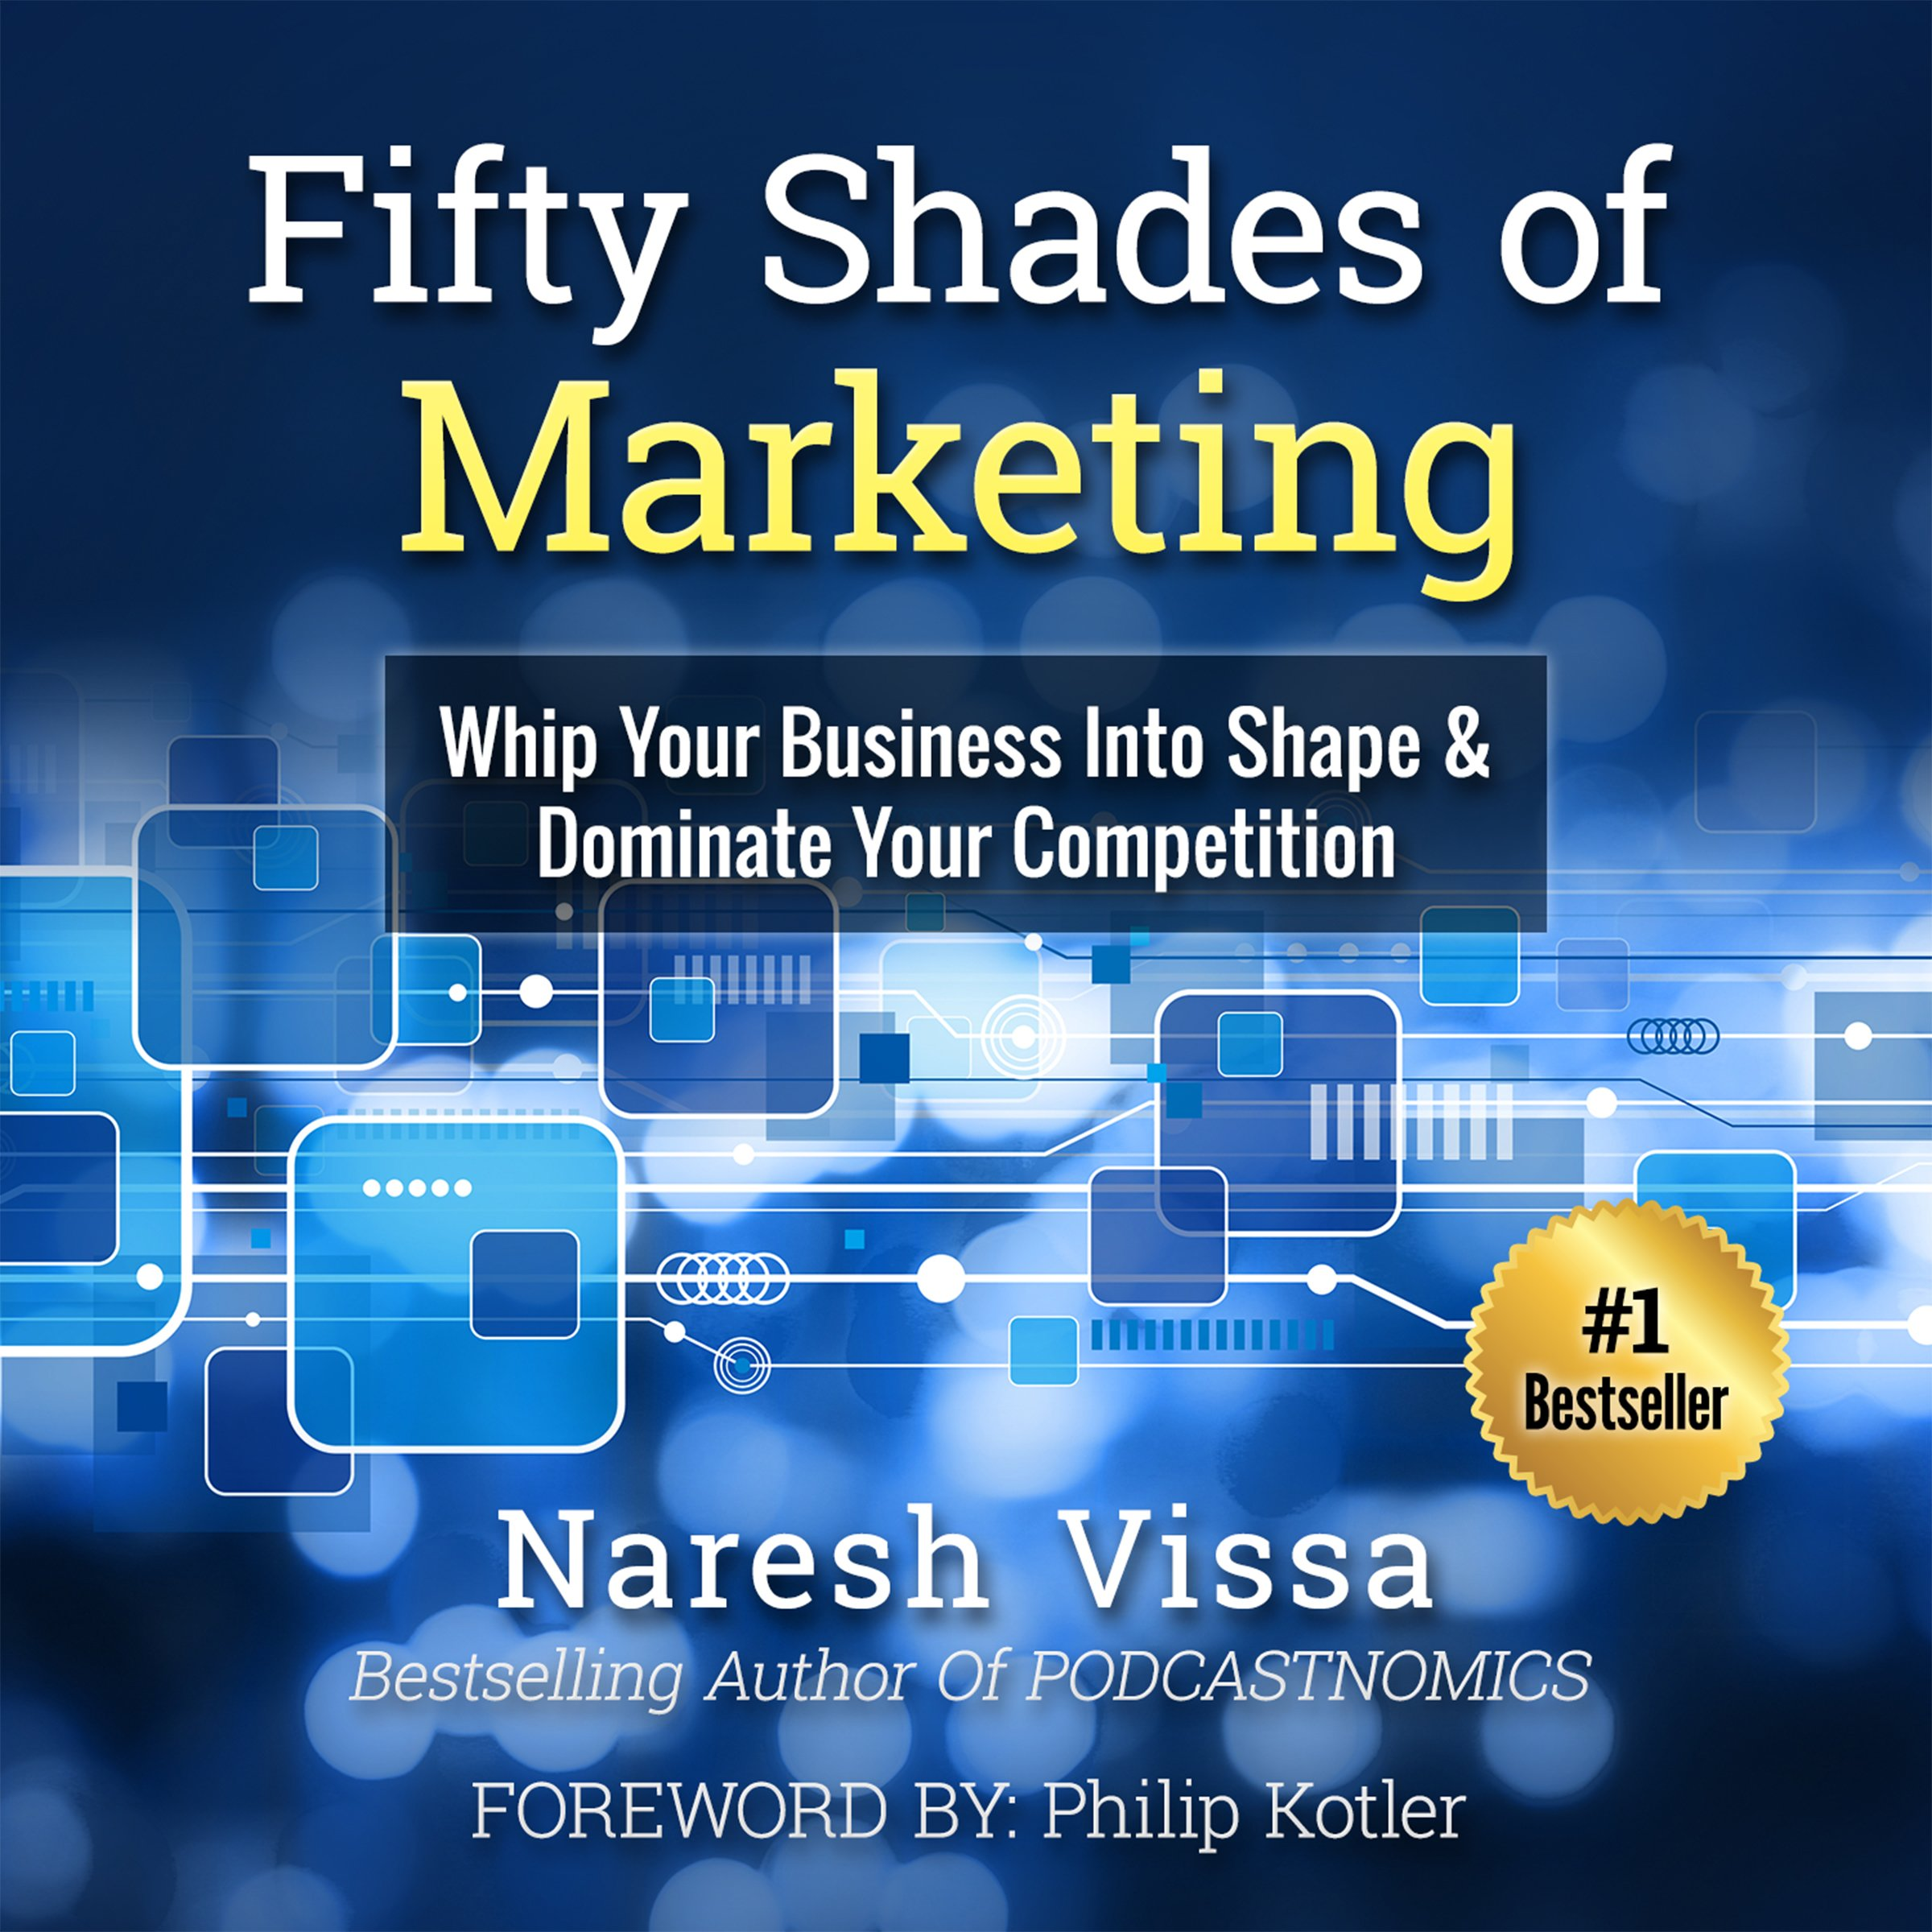 Fifty Shades of Marketing: Whip Your Business into Shape & Dominate Your Competition